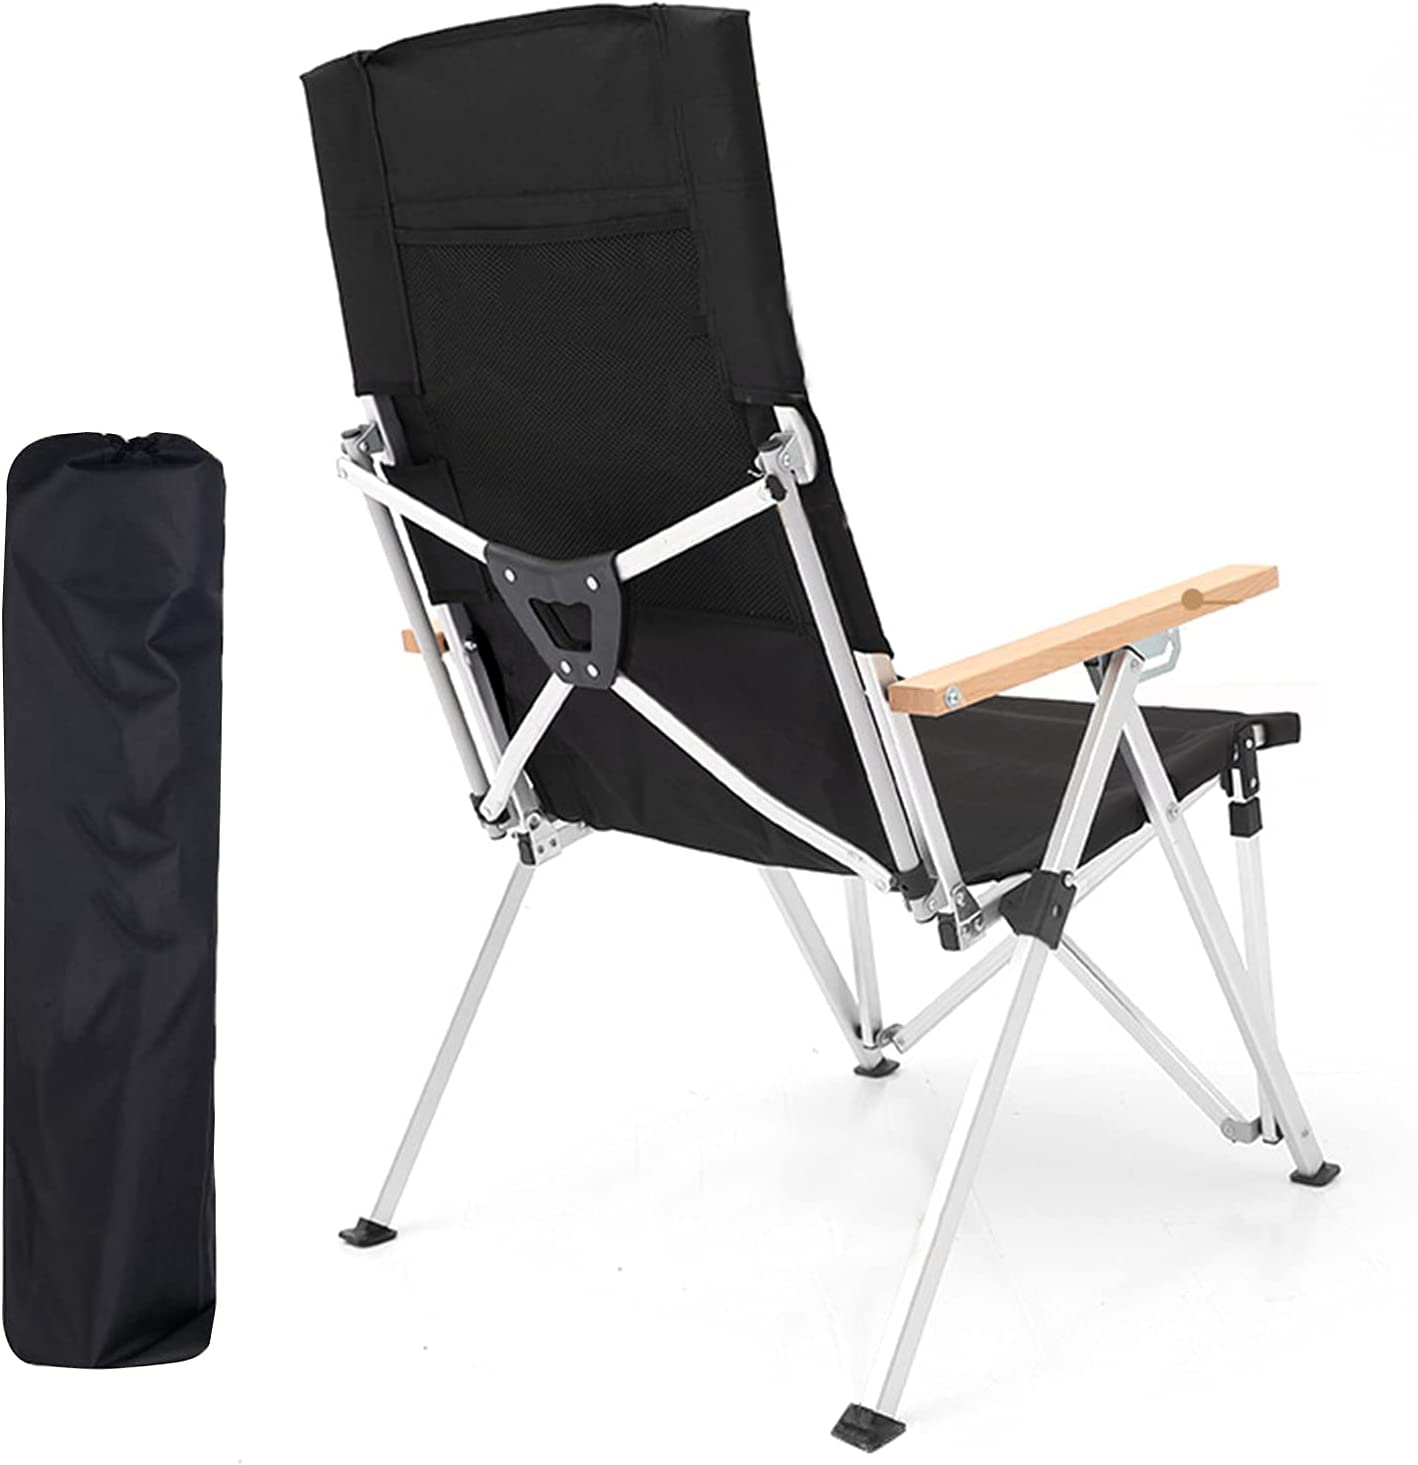 WOERD Folding Chair for Camp Portable Chairs Camping 35% OFF Cheap mail order specialty store Lightweigh